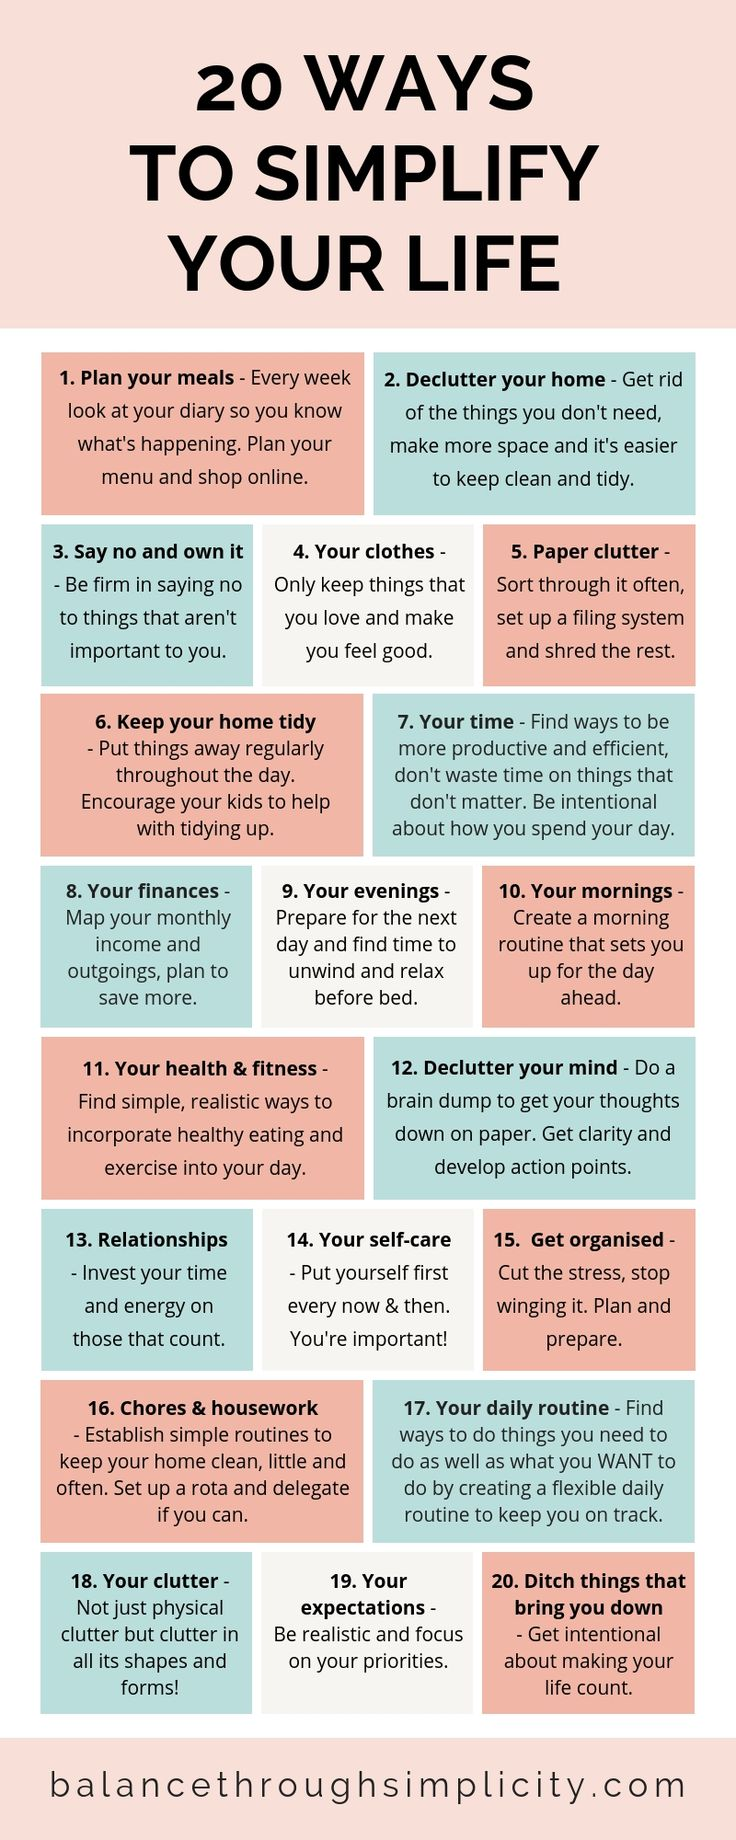 20 ways to simplify your life – 2016 neuer Versuch